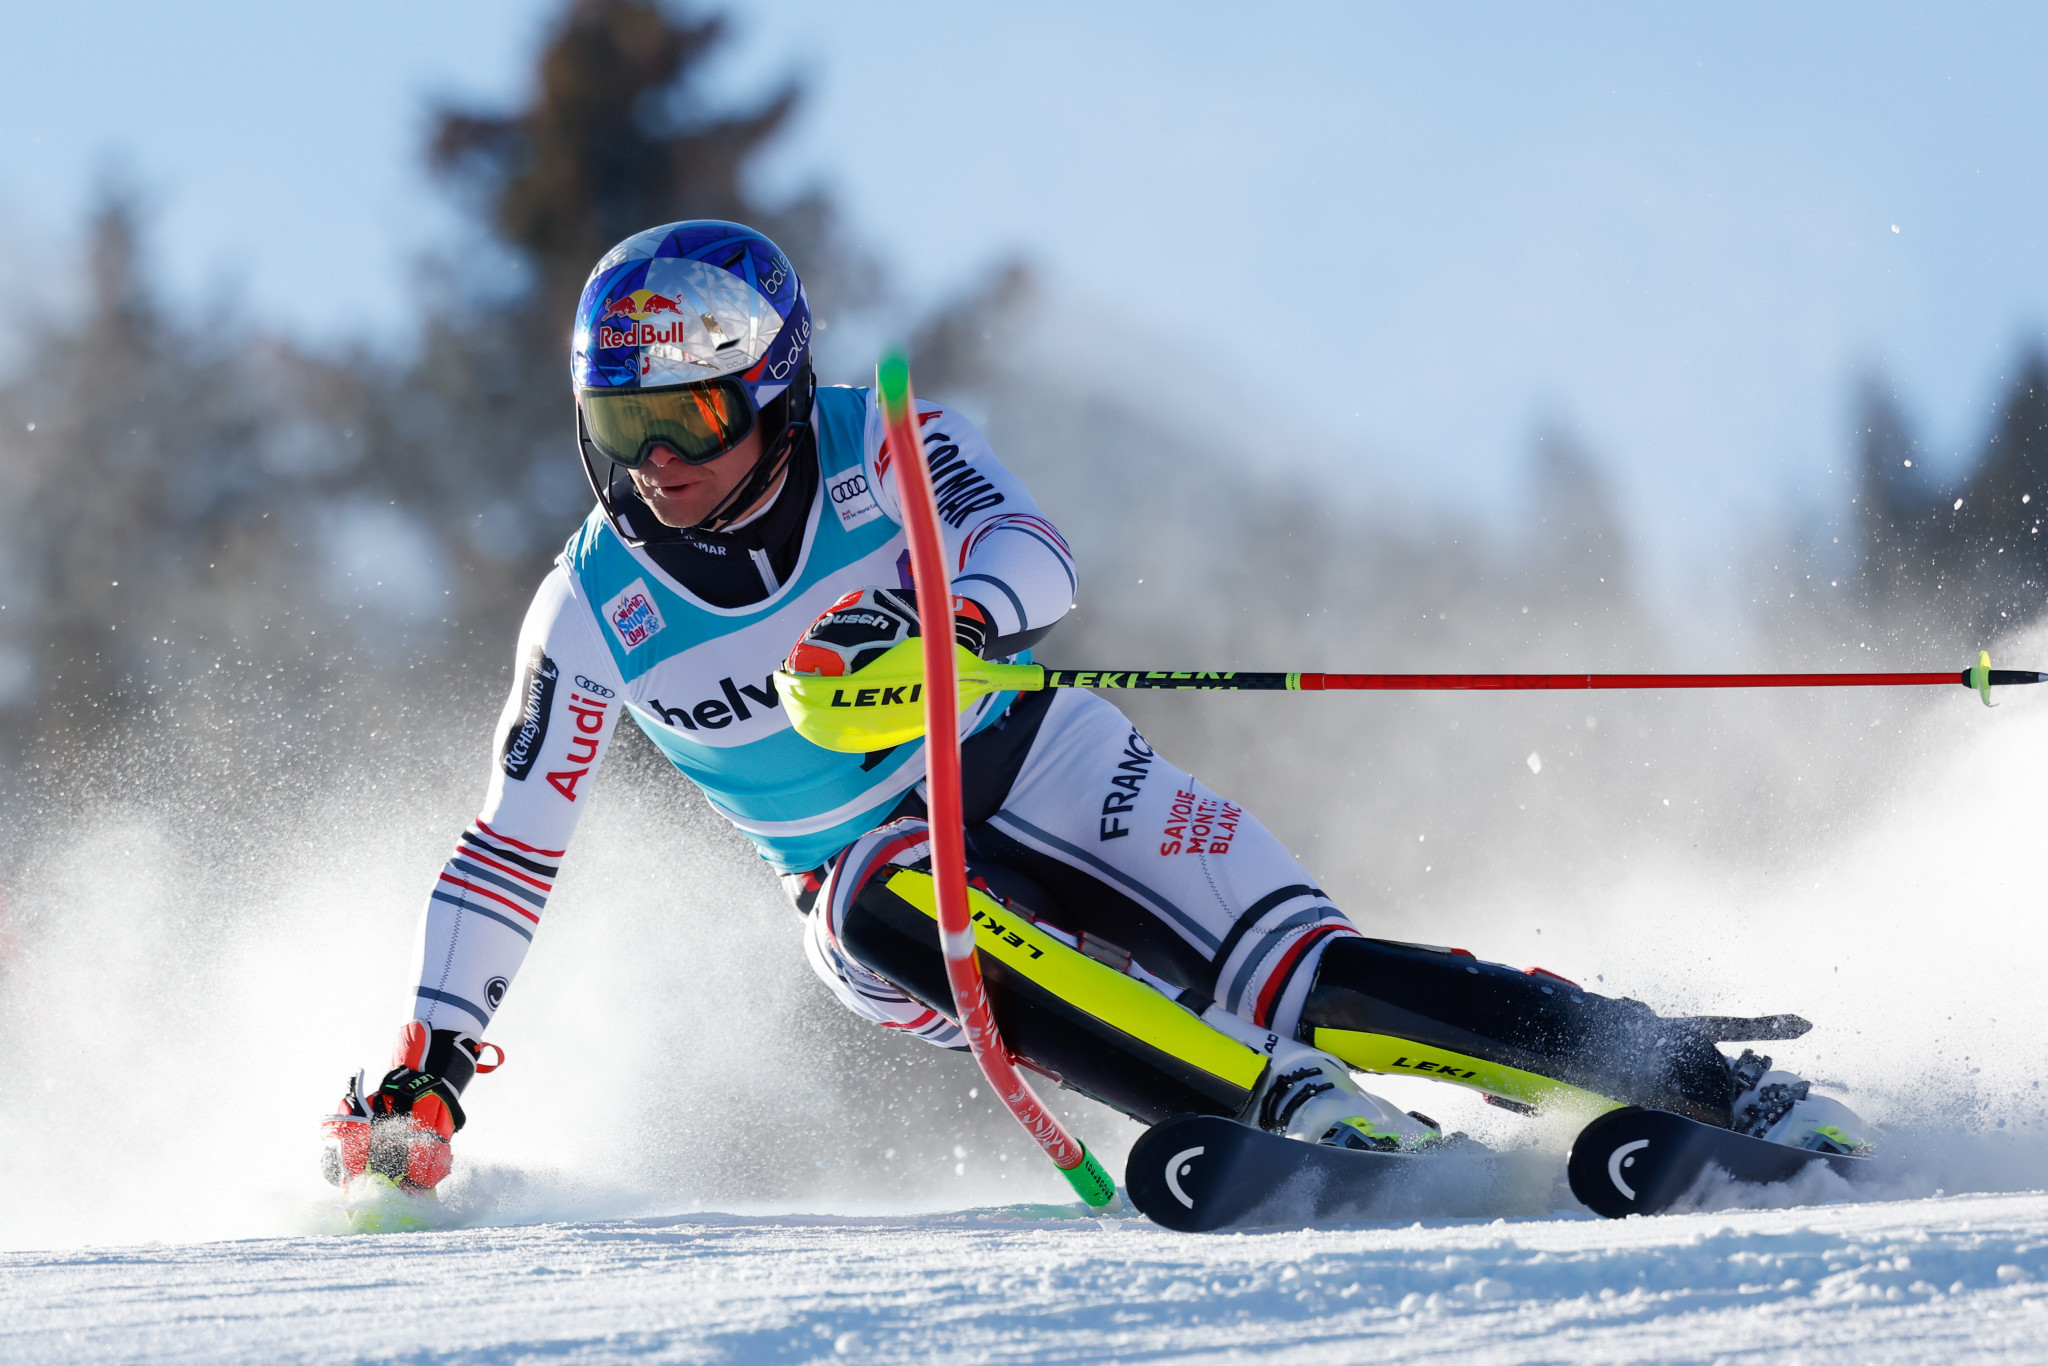 Alexis Pinturault of France is currently leading the overall FIS Alpine Ski World Cup standings ©Getty Images